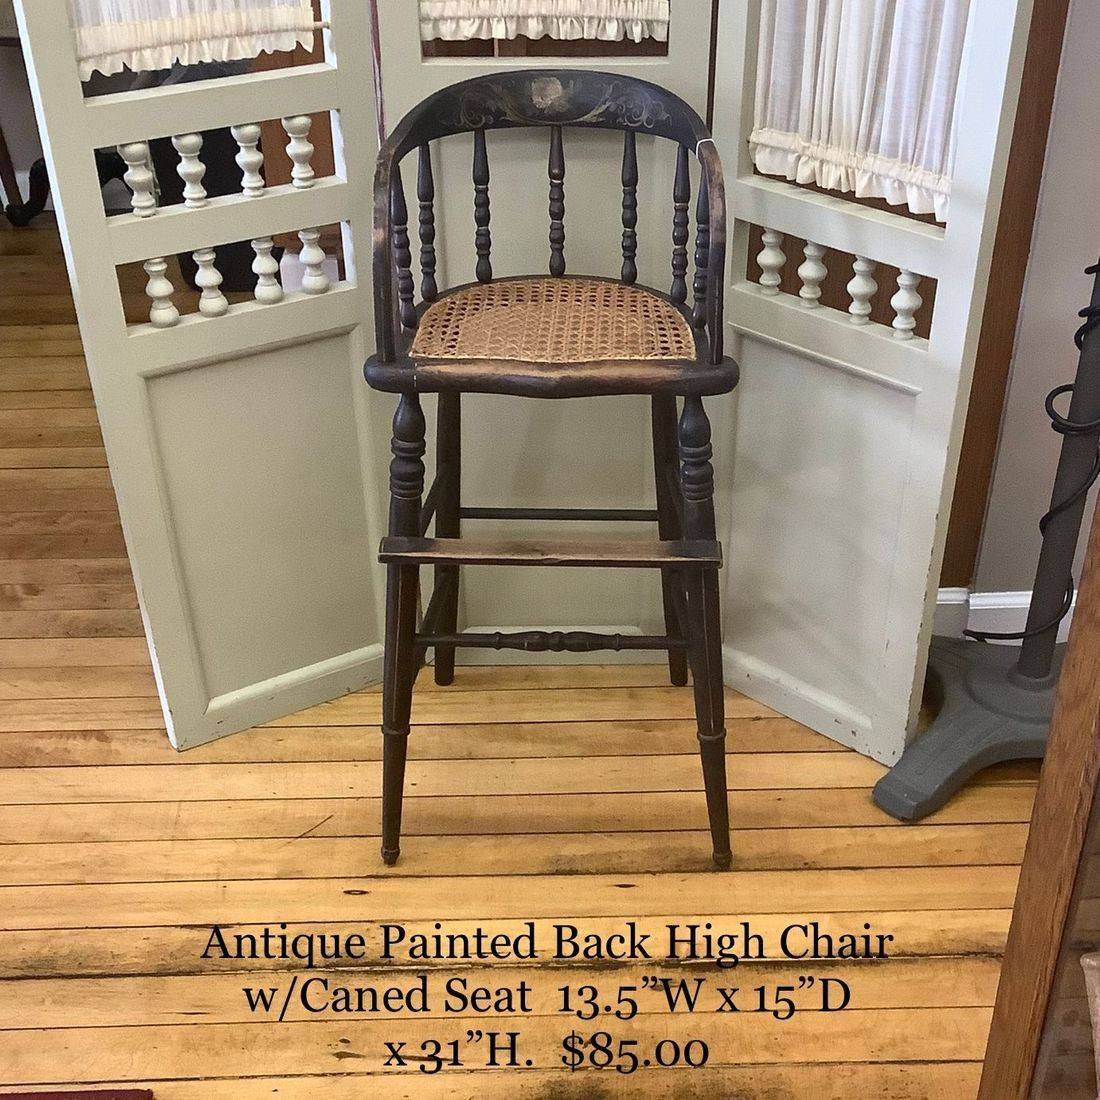 Antique Painted Back High Chair w/Caned Seat   $85.00